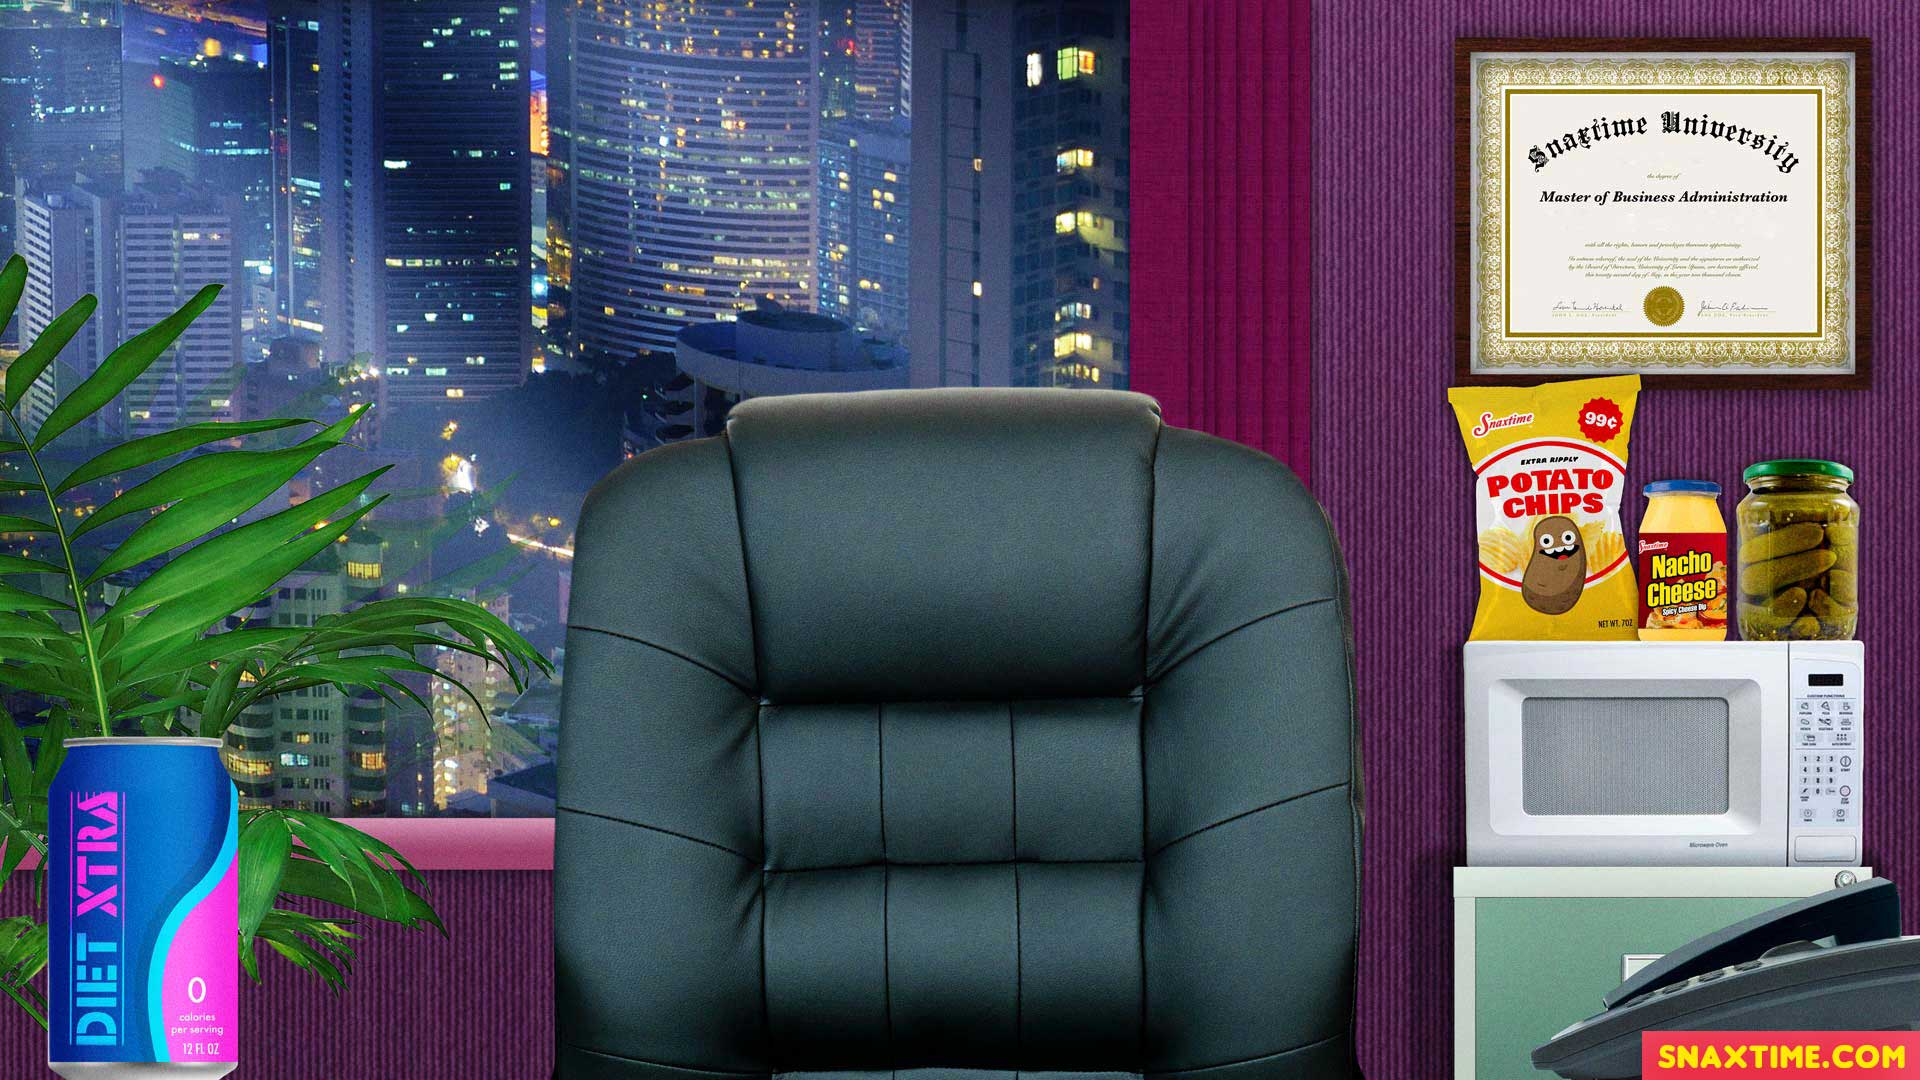 Free Zoom Background - Executive CEO Office with Microwave and junk food